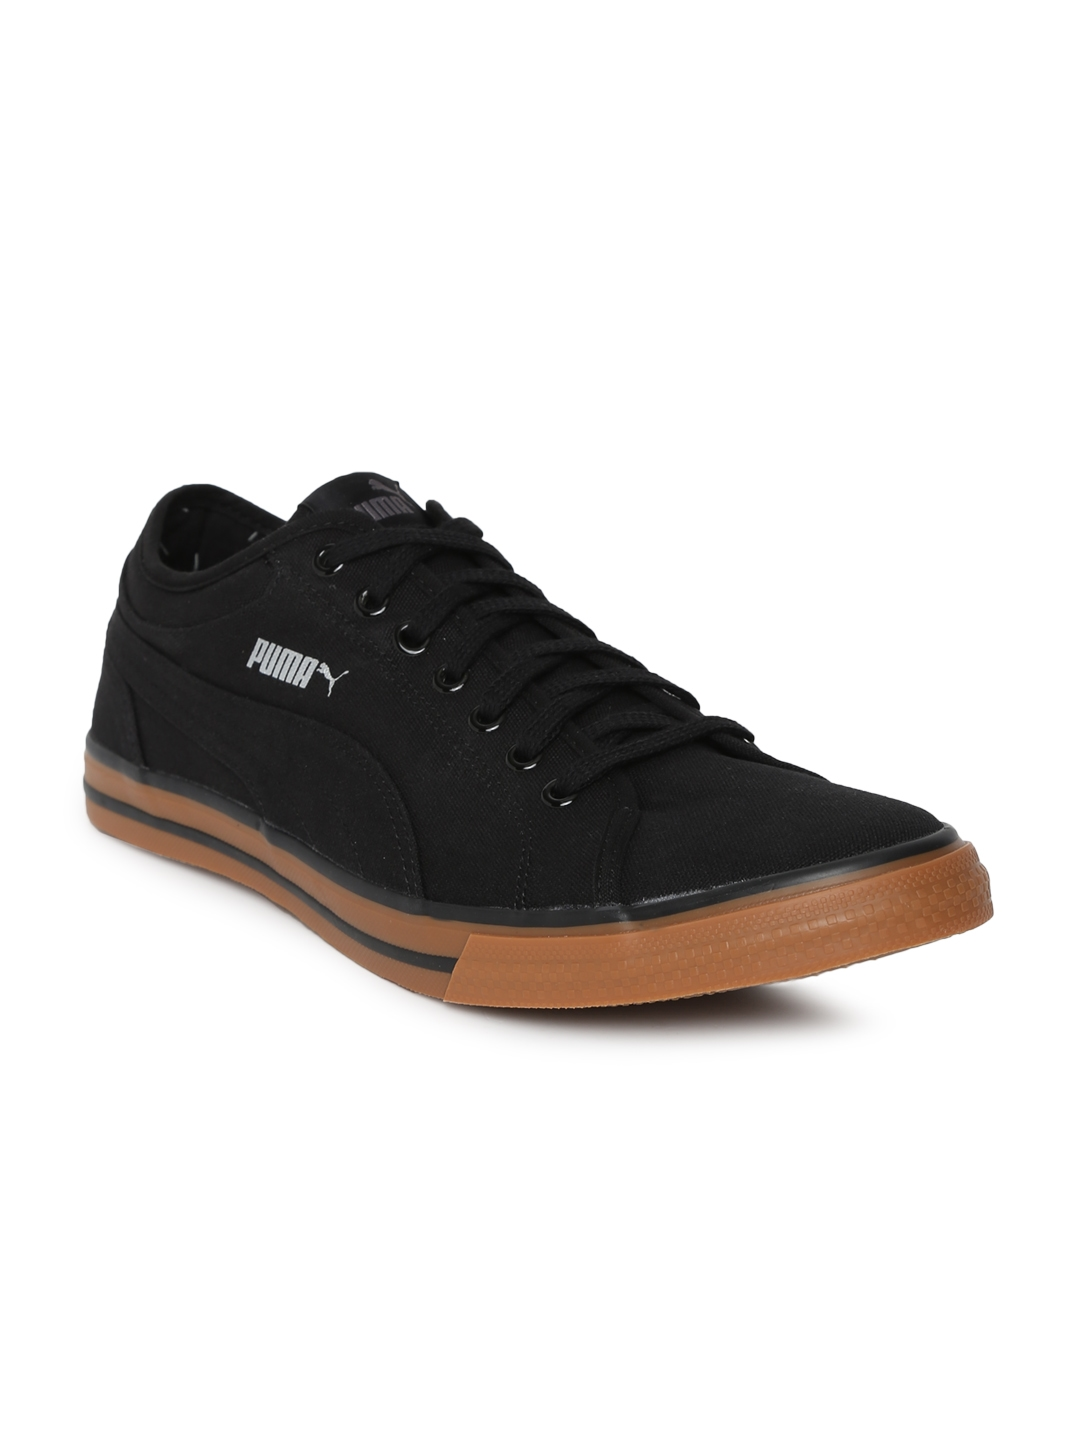 4418e2a8e977cf Buy Puma Unisex Black Yale Gum Solid IDP Sneakers - Casual Shoes for ...